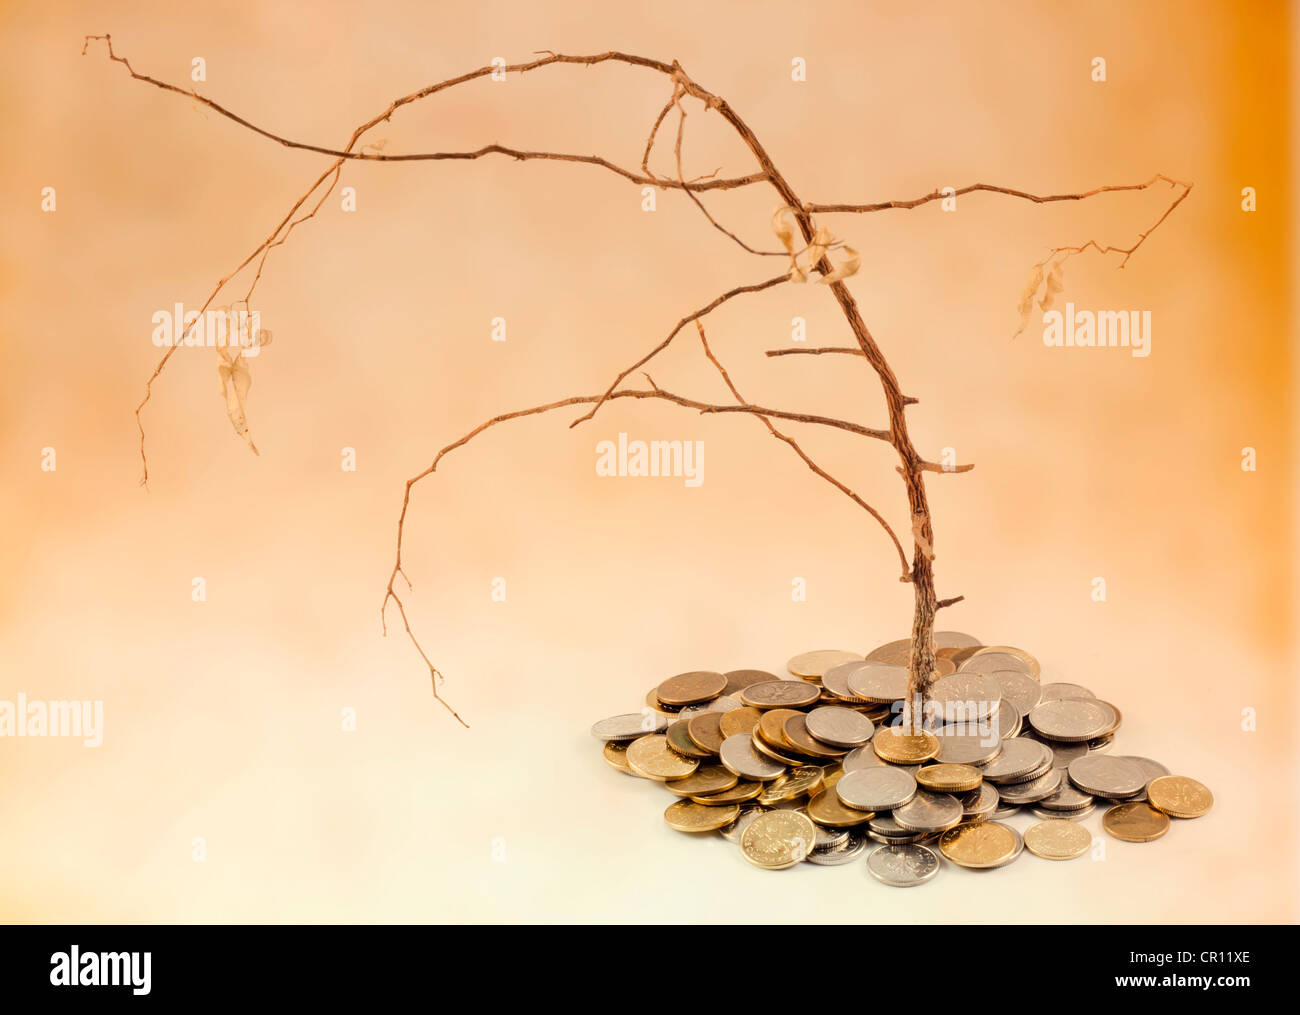 Bad business investment metaphor with withered three and money coins - Stock Image